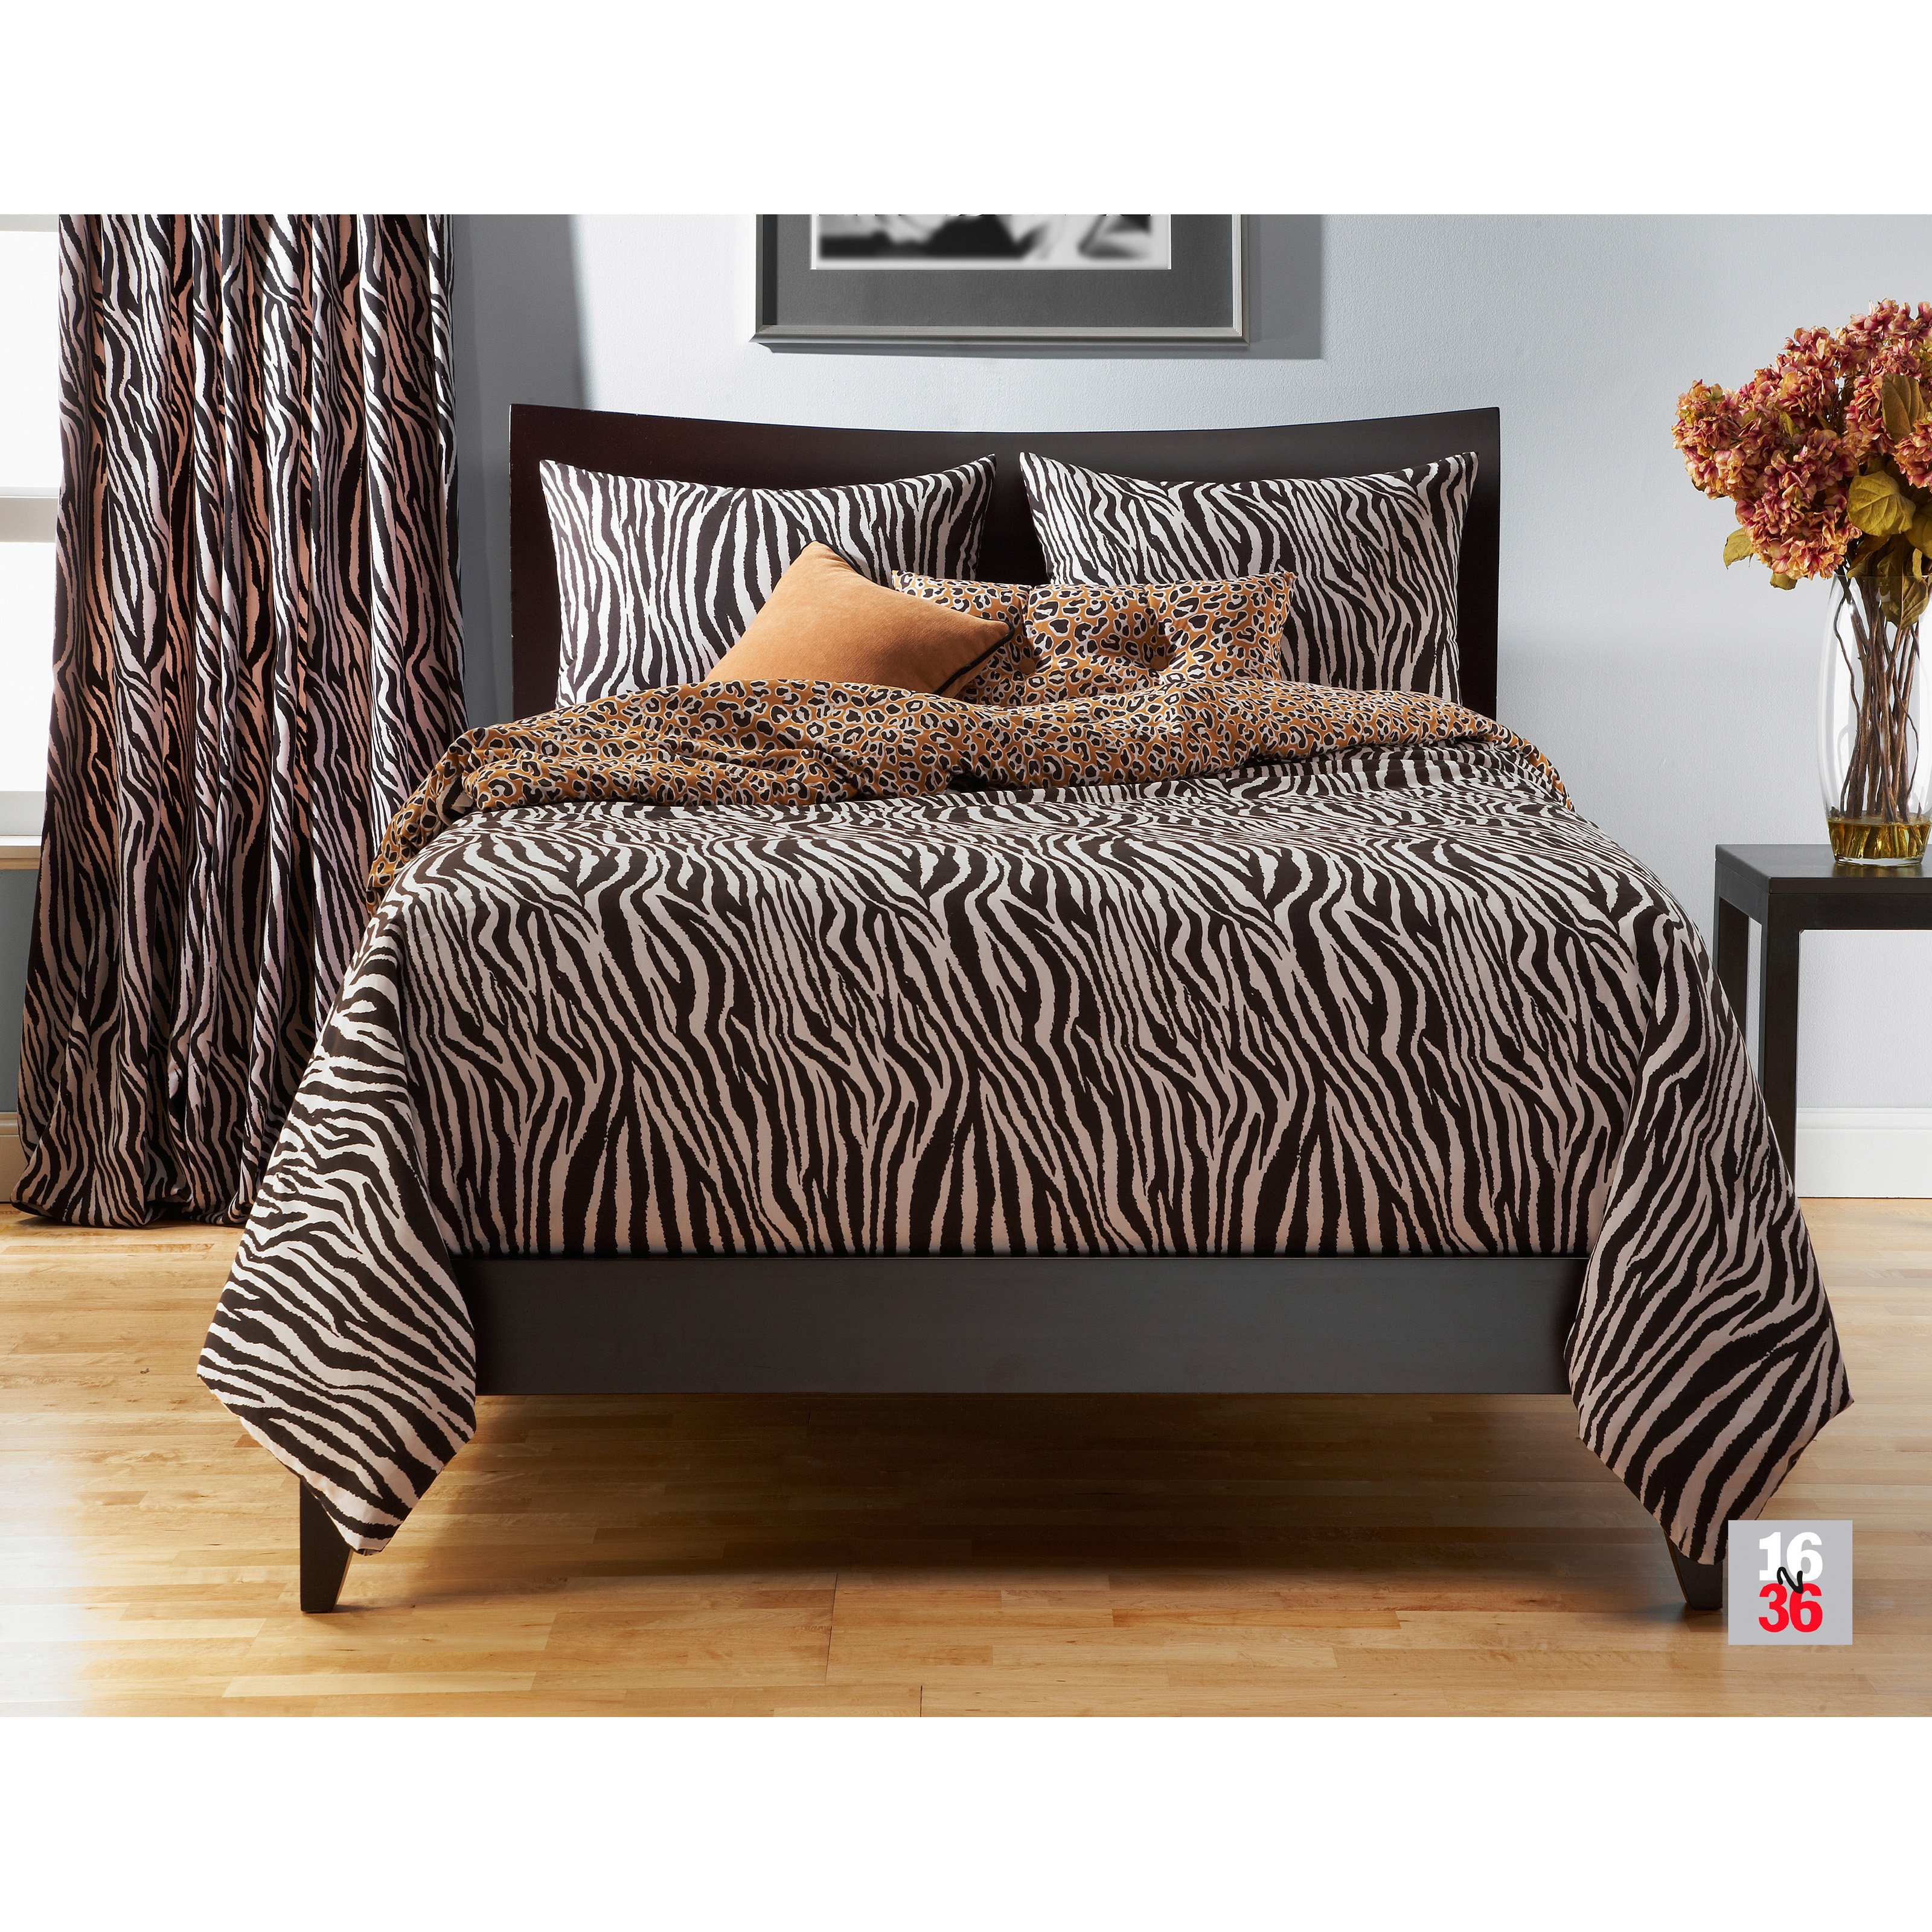 SIS Covers Zebra Zen Duvet Set - California King